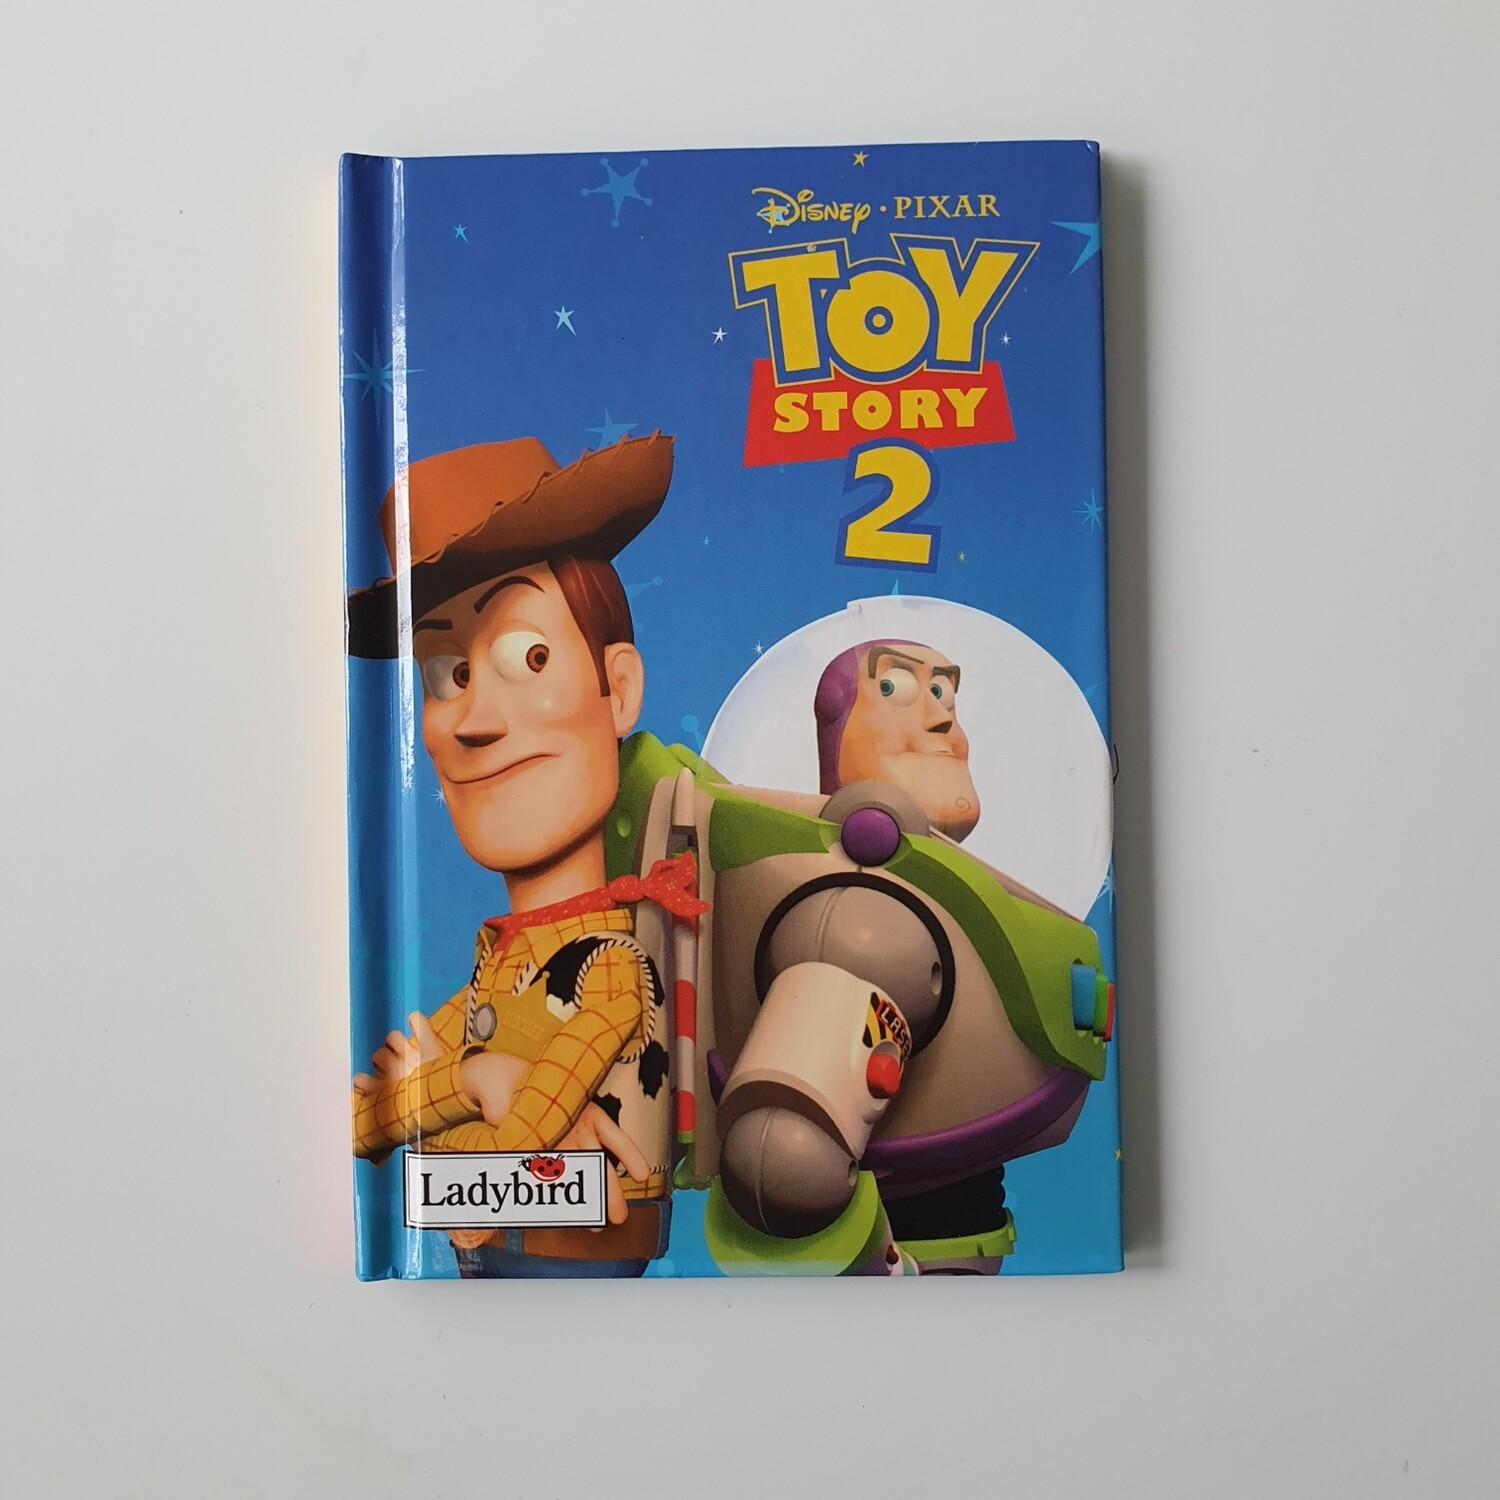 Toy Story 2 Notebook